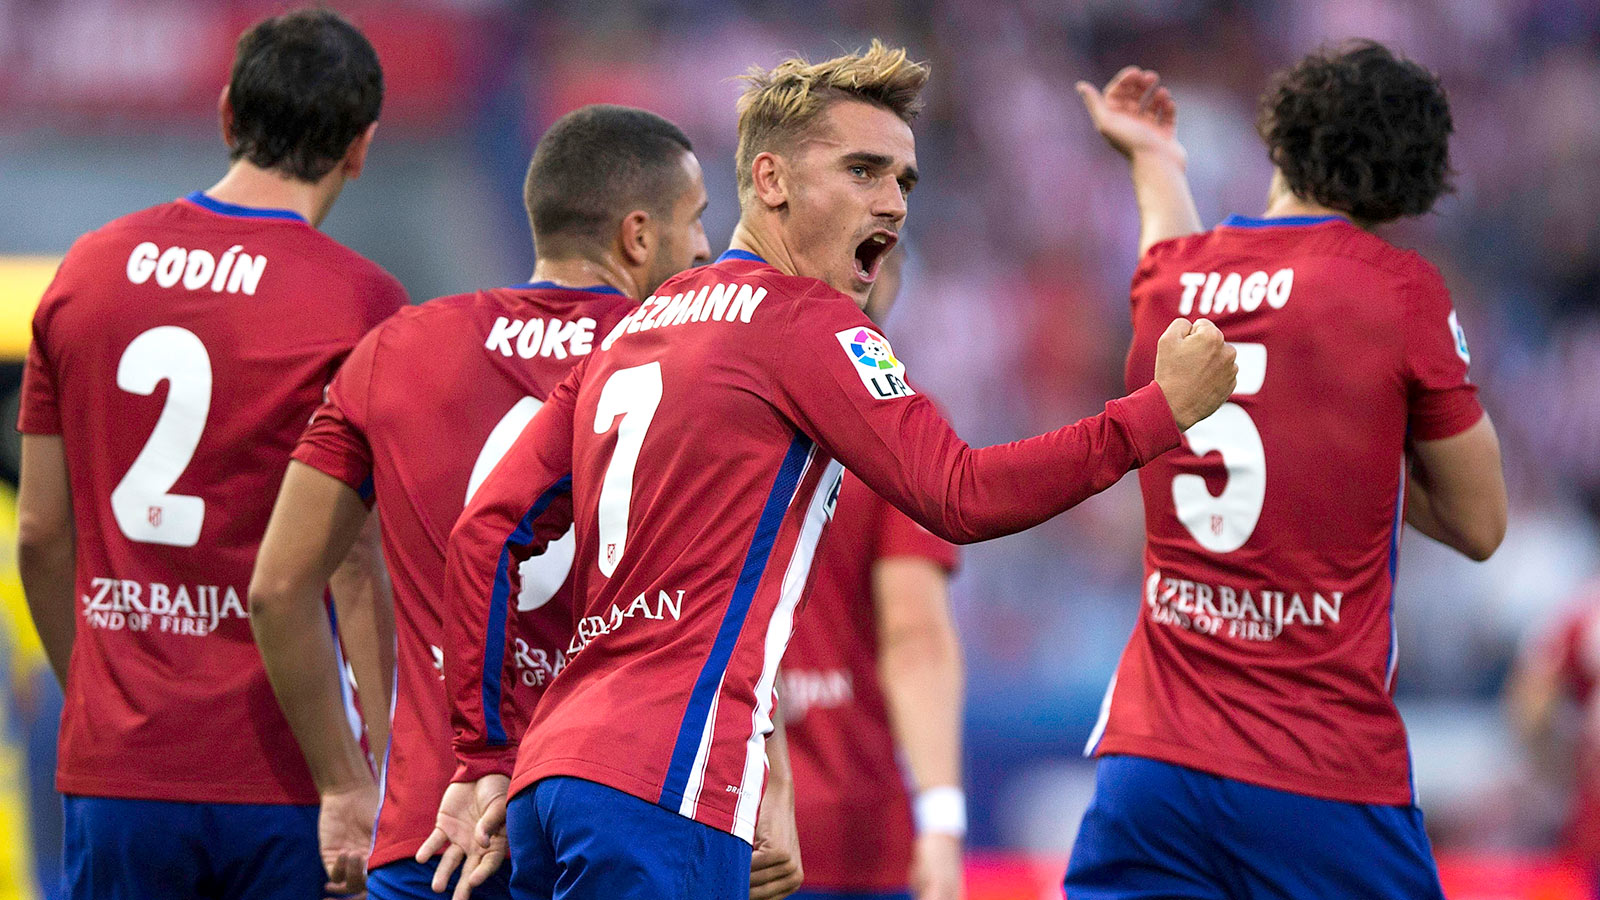 Atletico open season with nervy win over La Liga newcomer Las Palmas